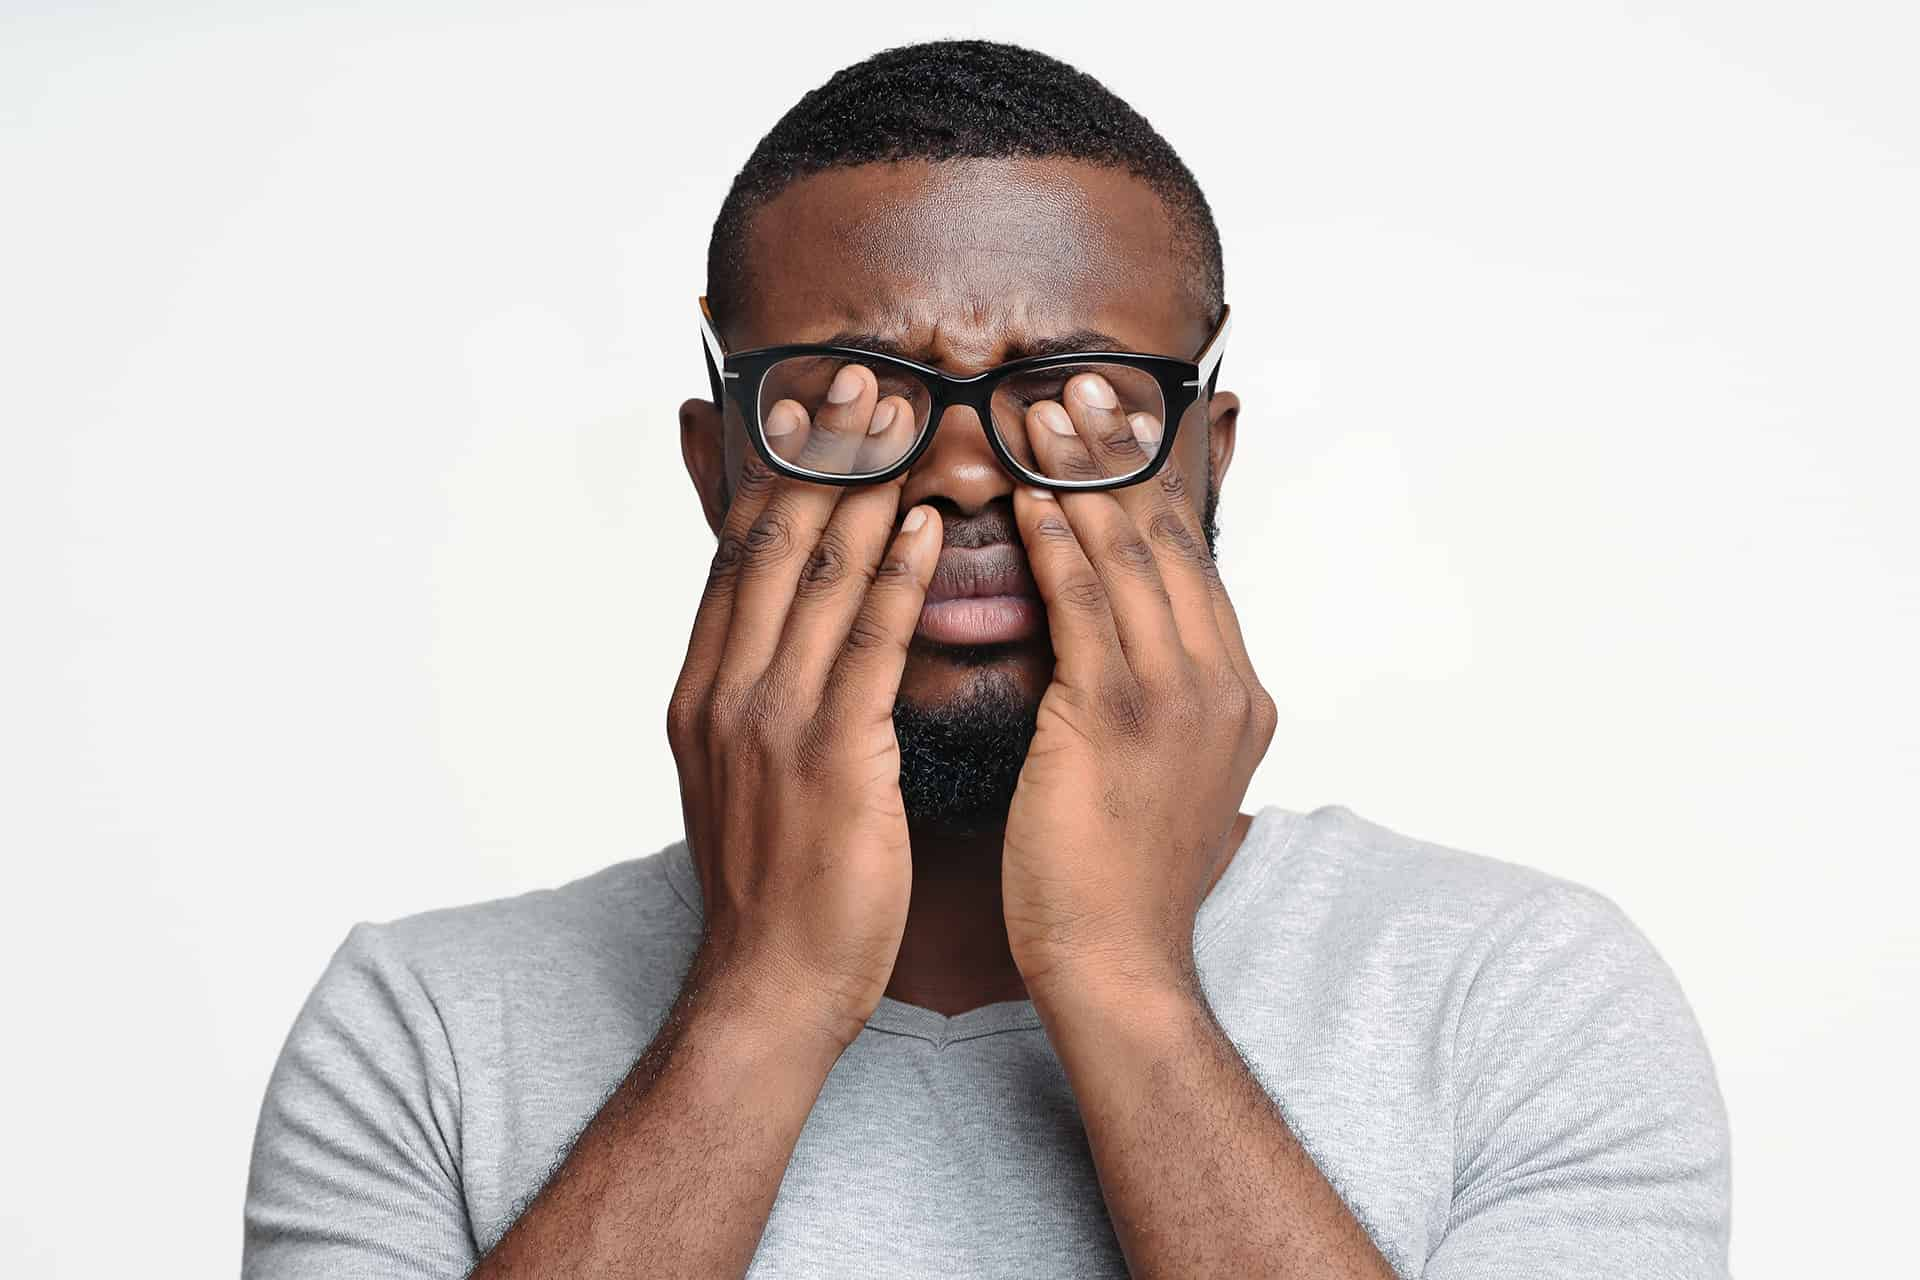 Afro guy in glasses rubbing his eyes